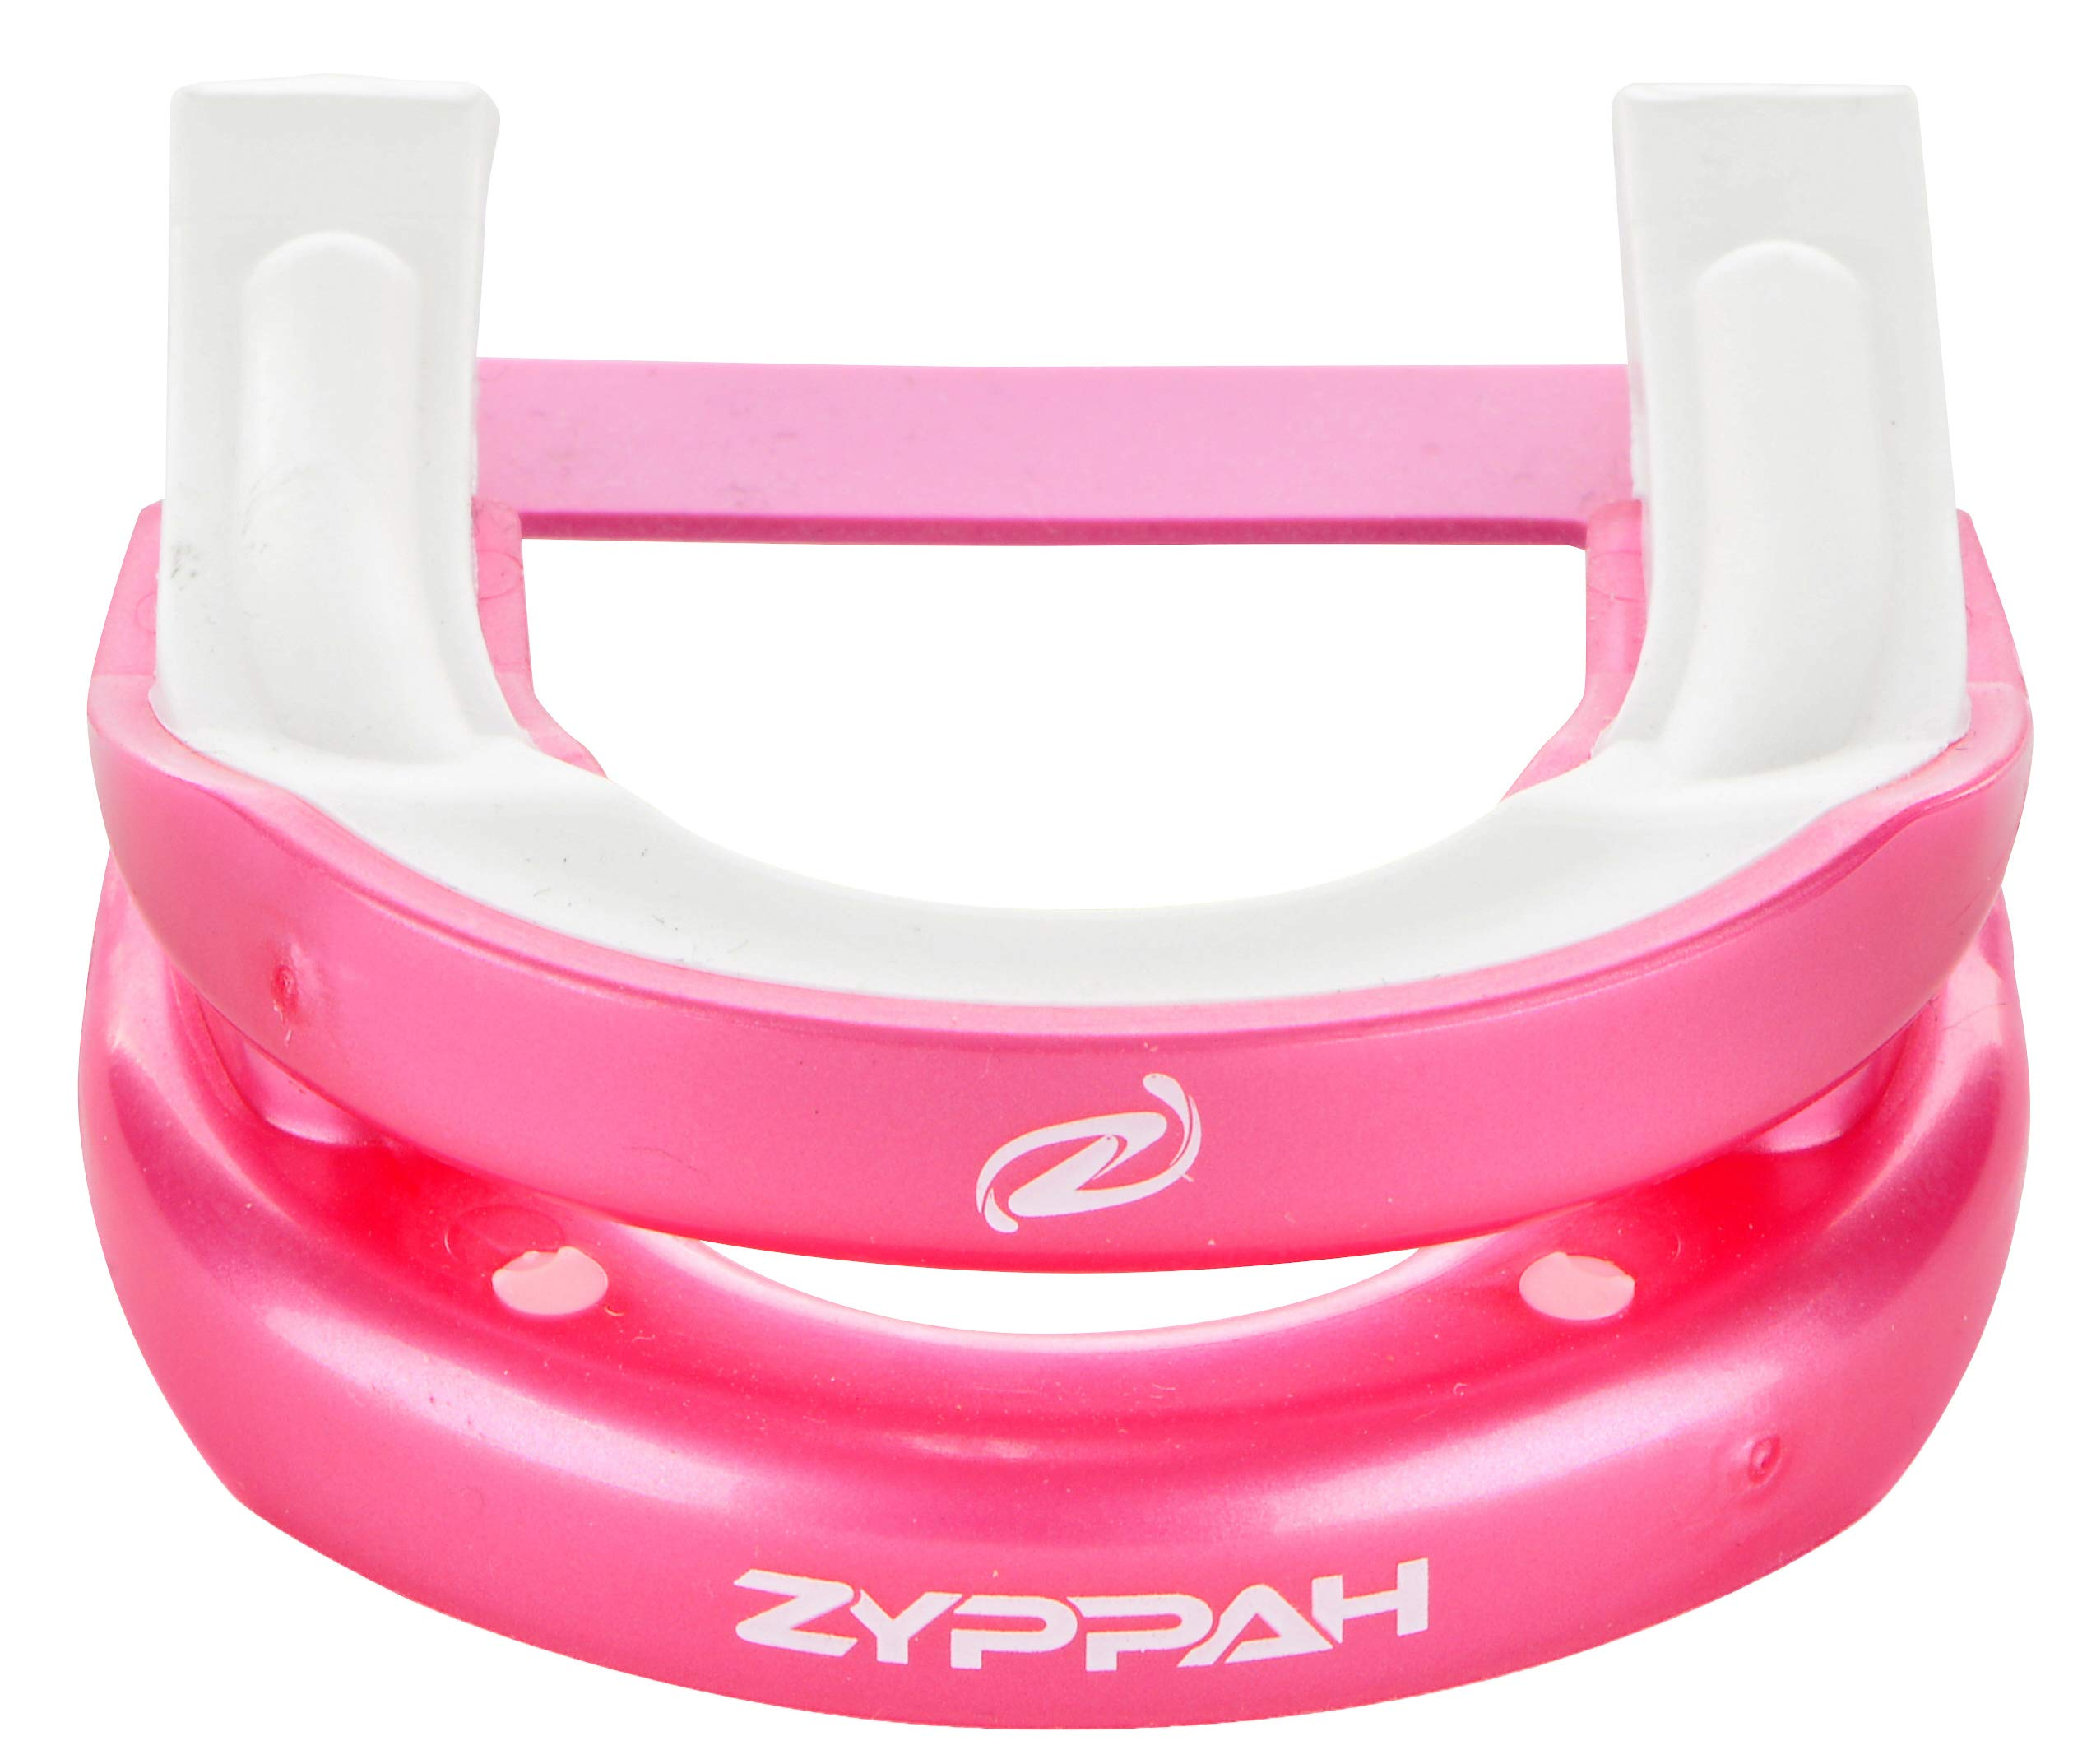 ZYPPAH Anti Snoring Hybrid Oral Appliance Mouthpiece Stop Snoring Sleep Aid Solution Snore Stopper Mouth Guard Device - Made in USA, FDA Cleared - Beauty Sleep